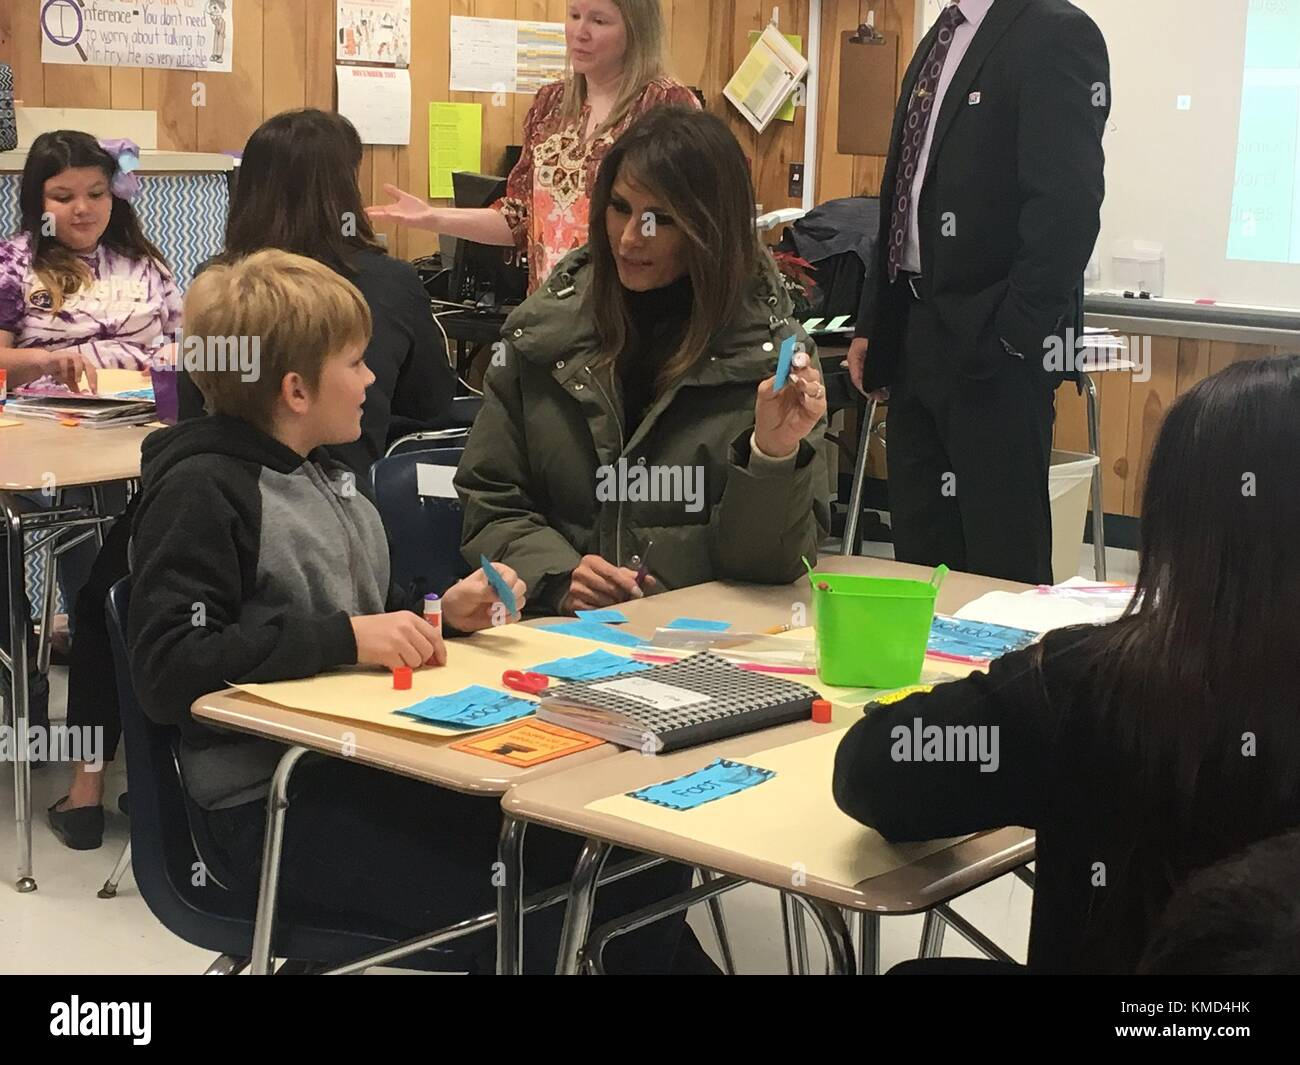 Texas, USA. 06th Dec, 2017. U.S. First Lady Melania Trump works with a young student during a visit to the Charlie - Stock Image